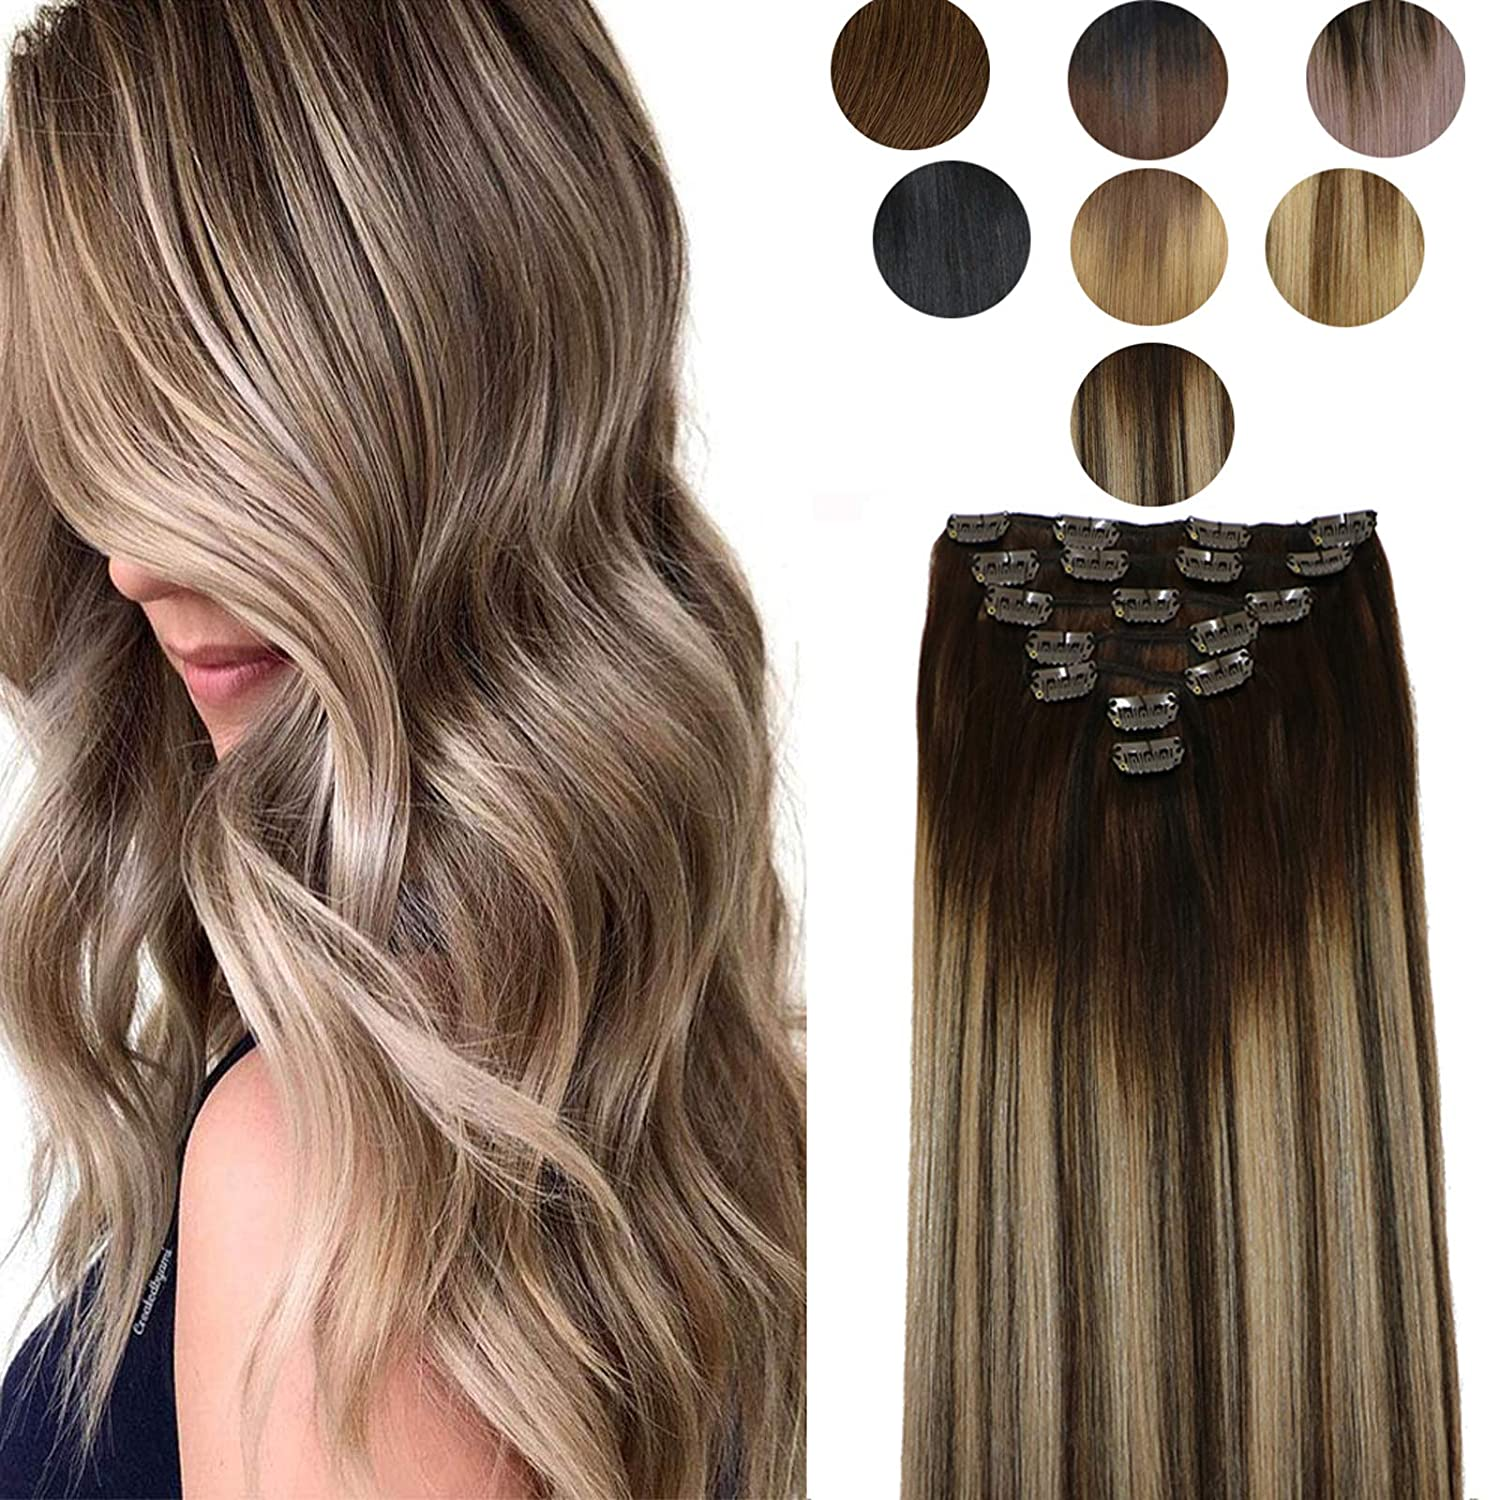 specialty shop Mushroom Brown Hair Max 48% OFF Extensions Clip in with 7pics Human 14